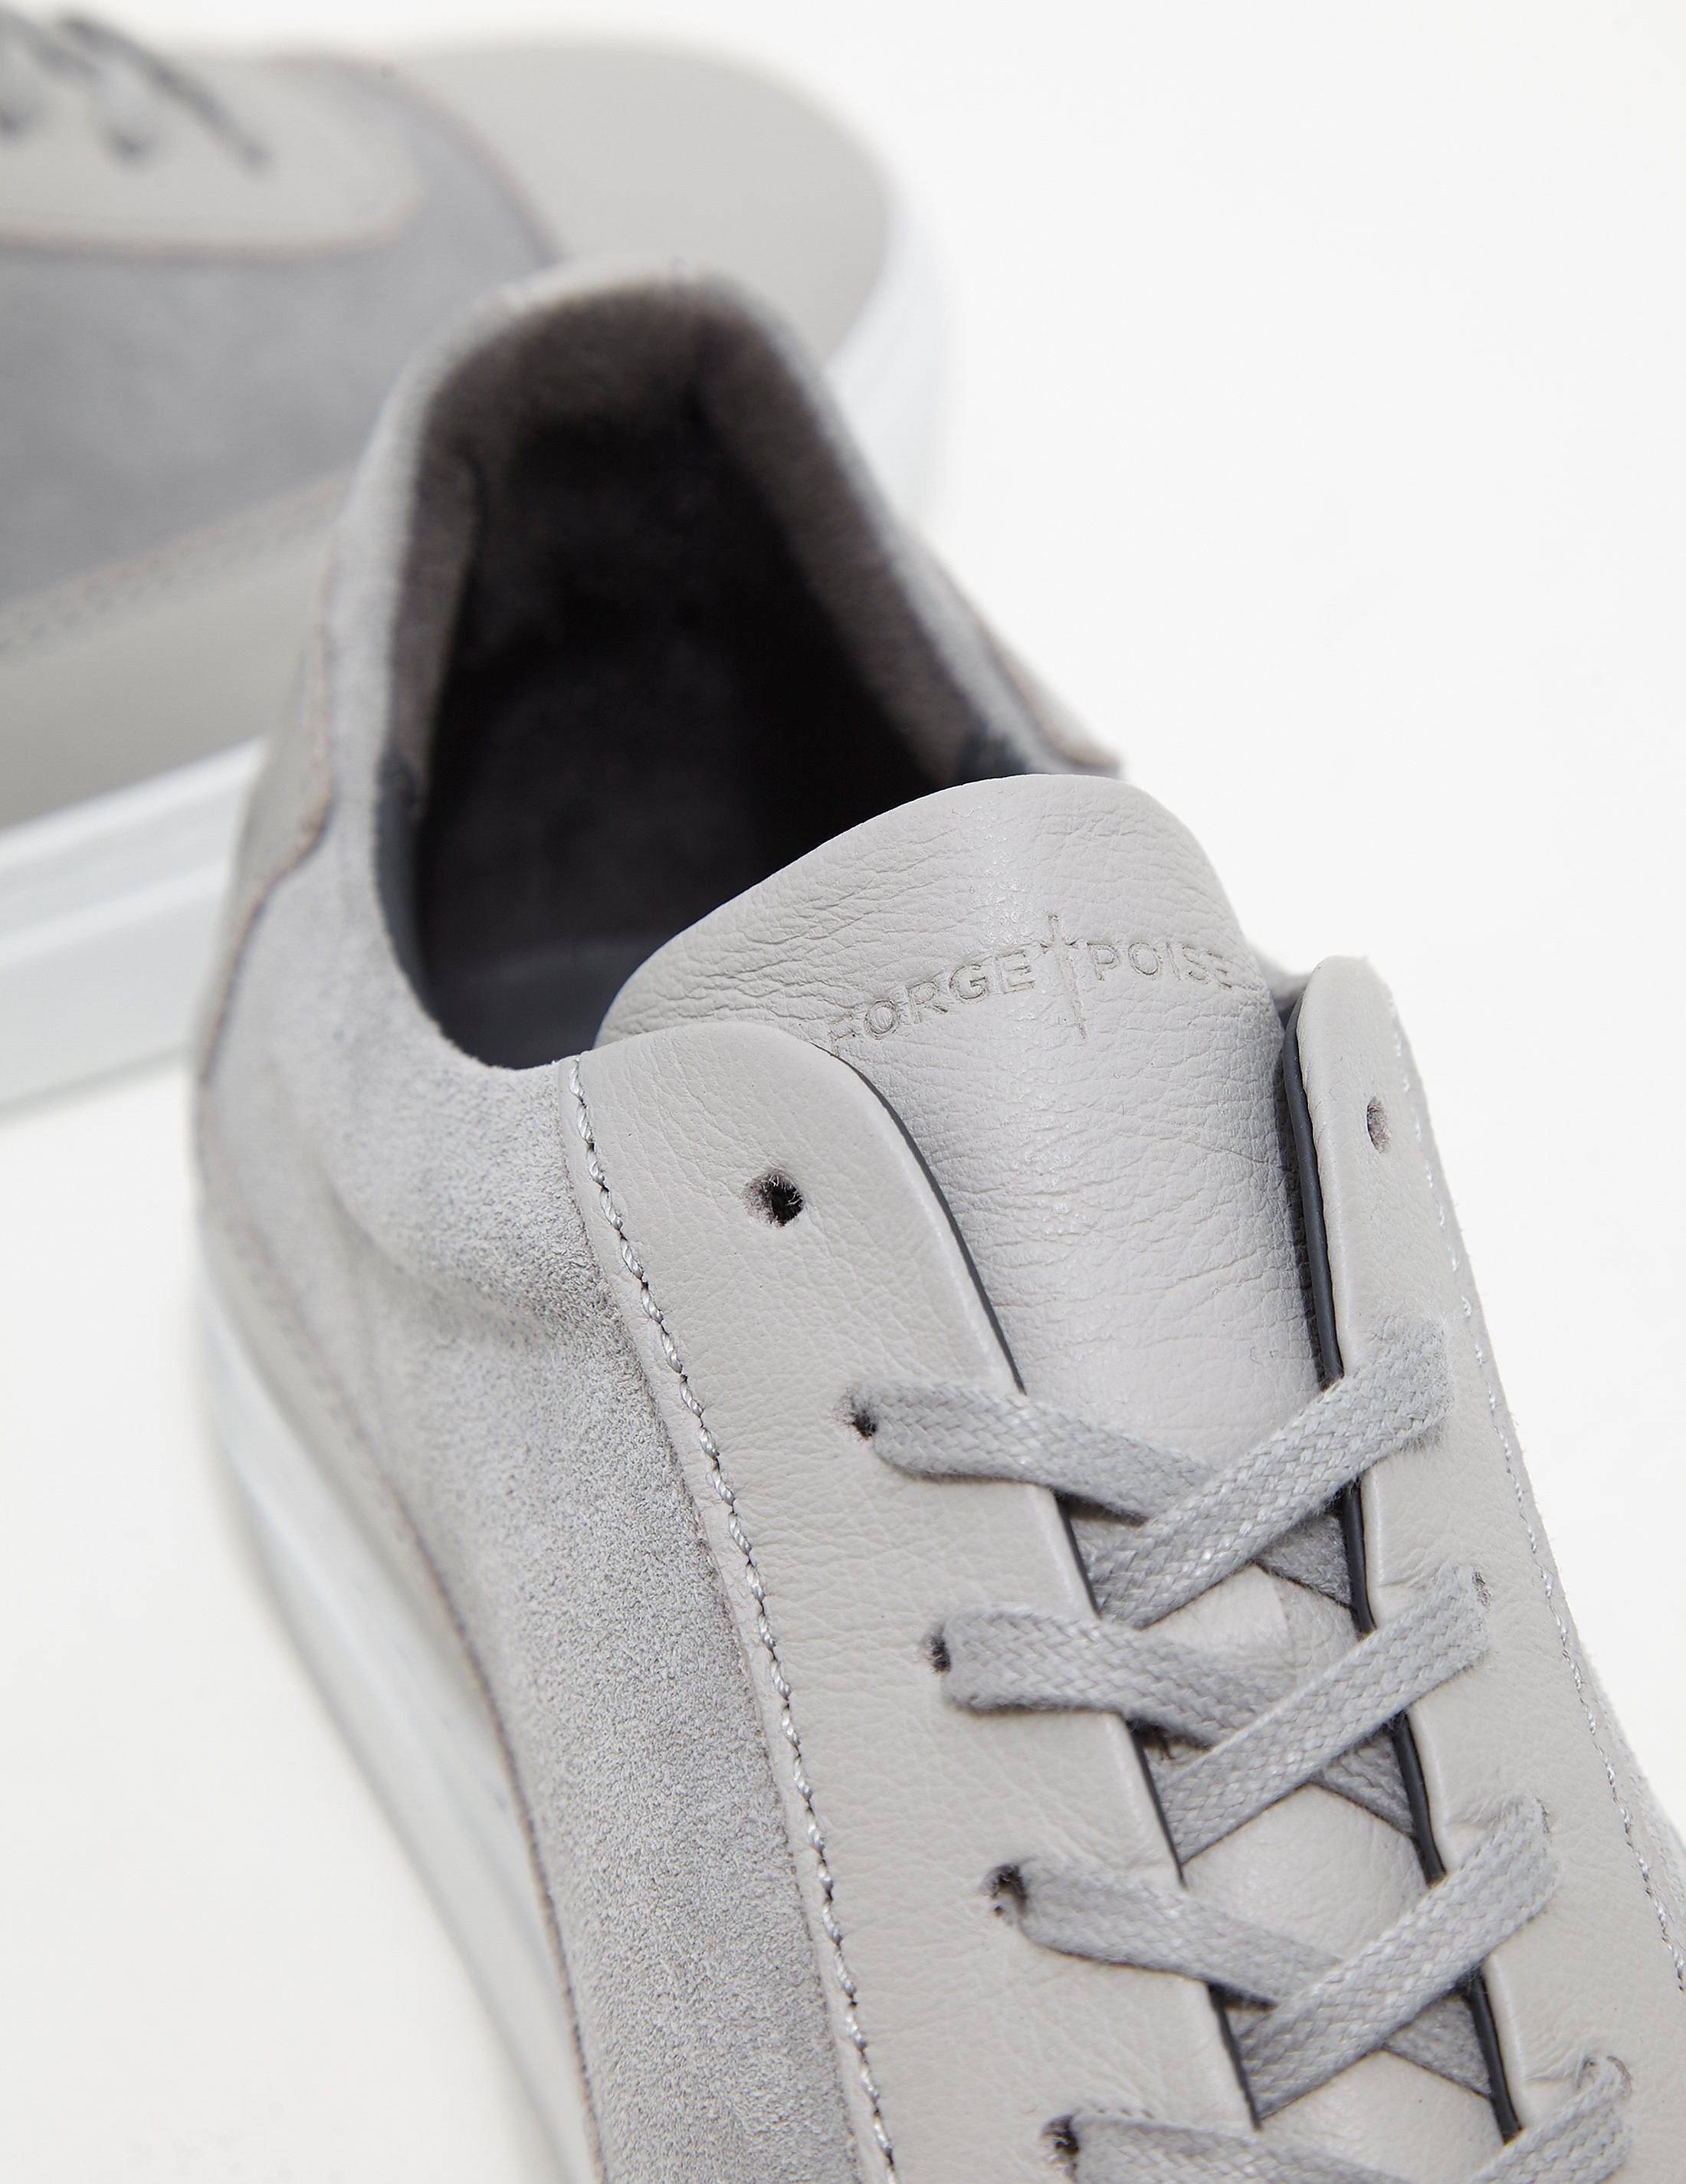 Forge Poise Excalibur Low Trainers